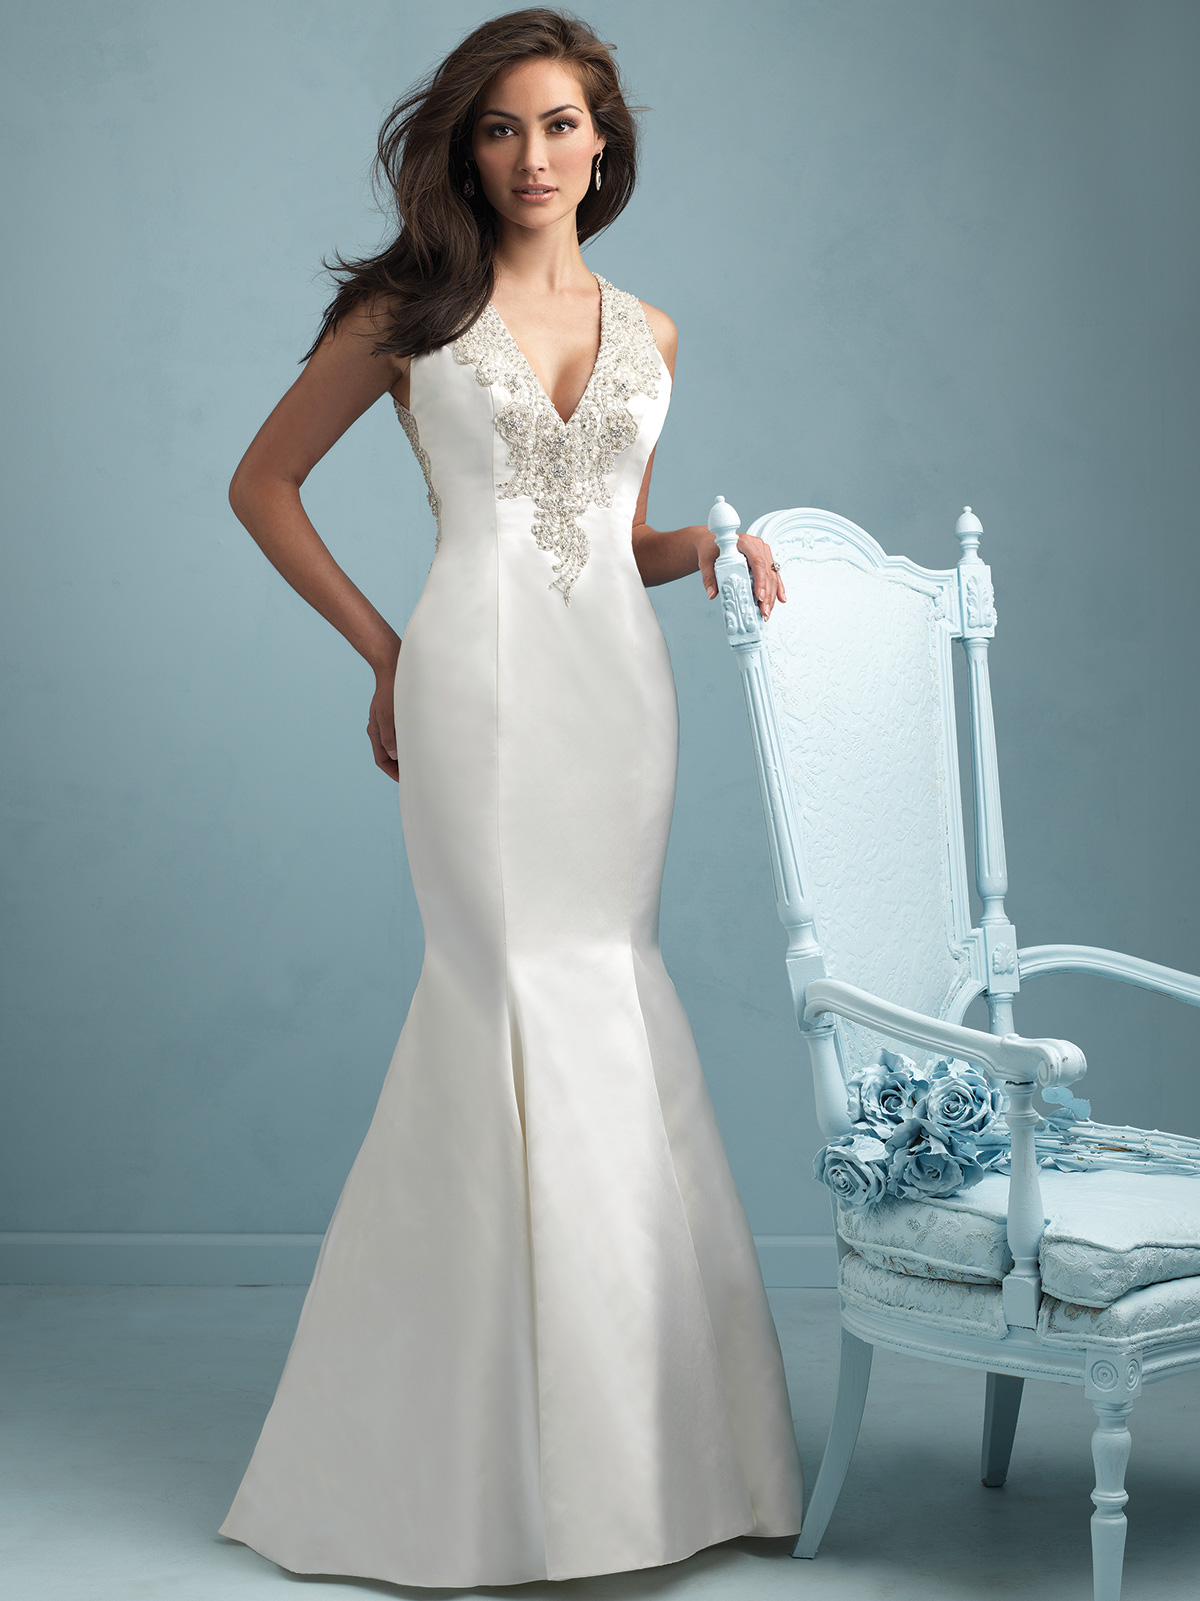 Allure Bridal Dress 9219: DimitraDesigns.com